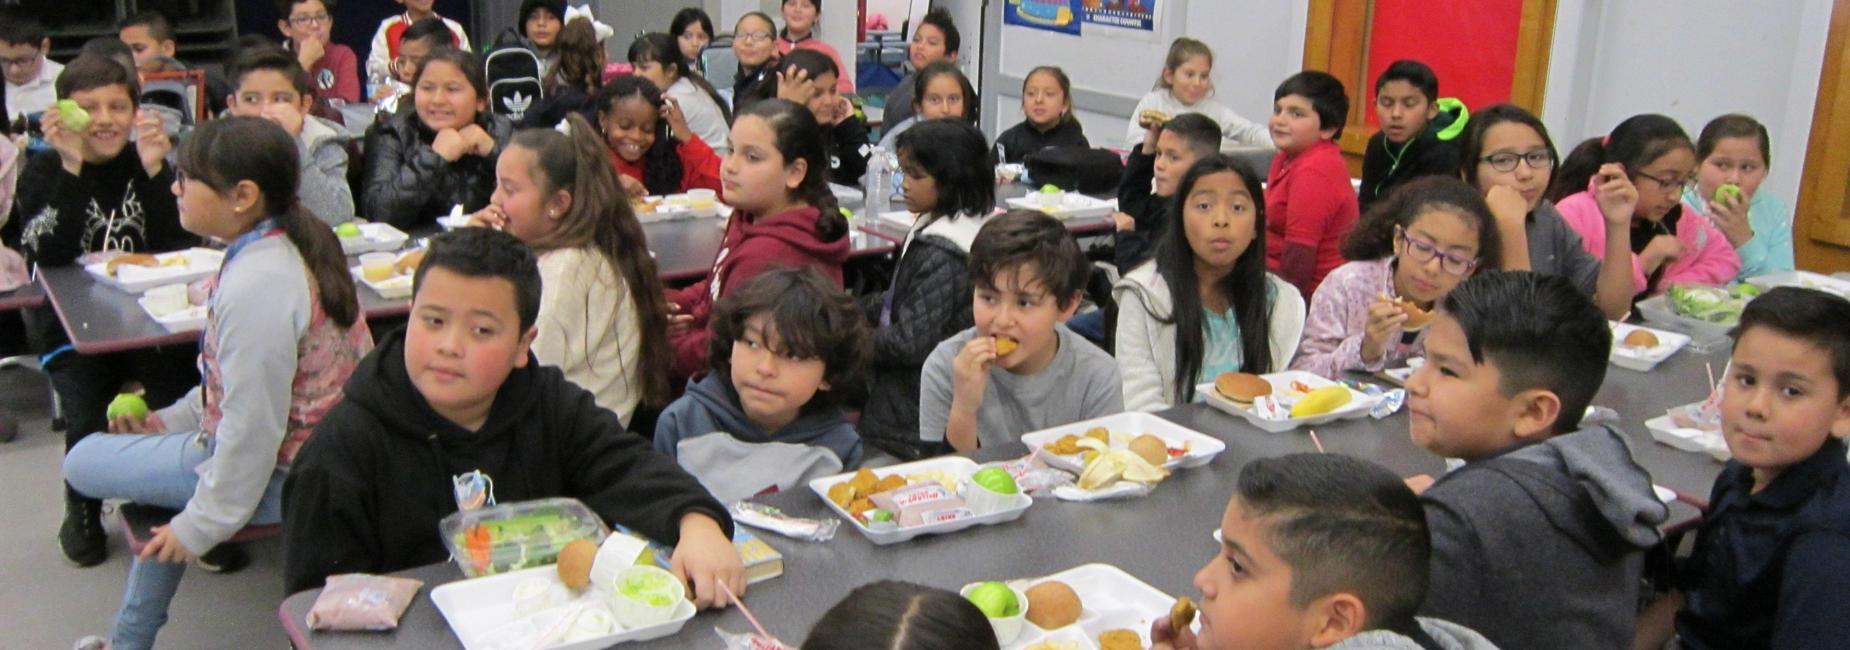 Students eat their lunch in the cafeteria